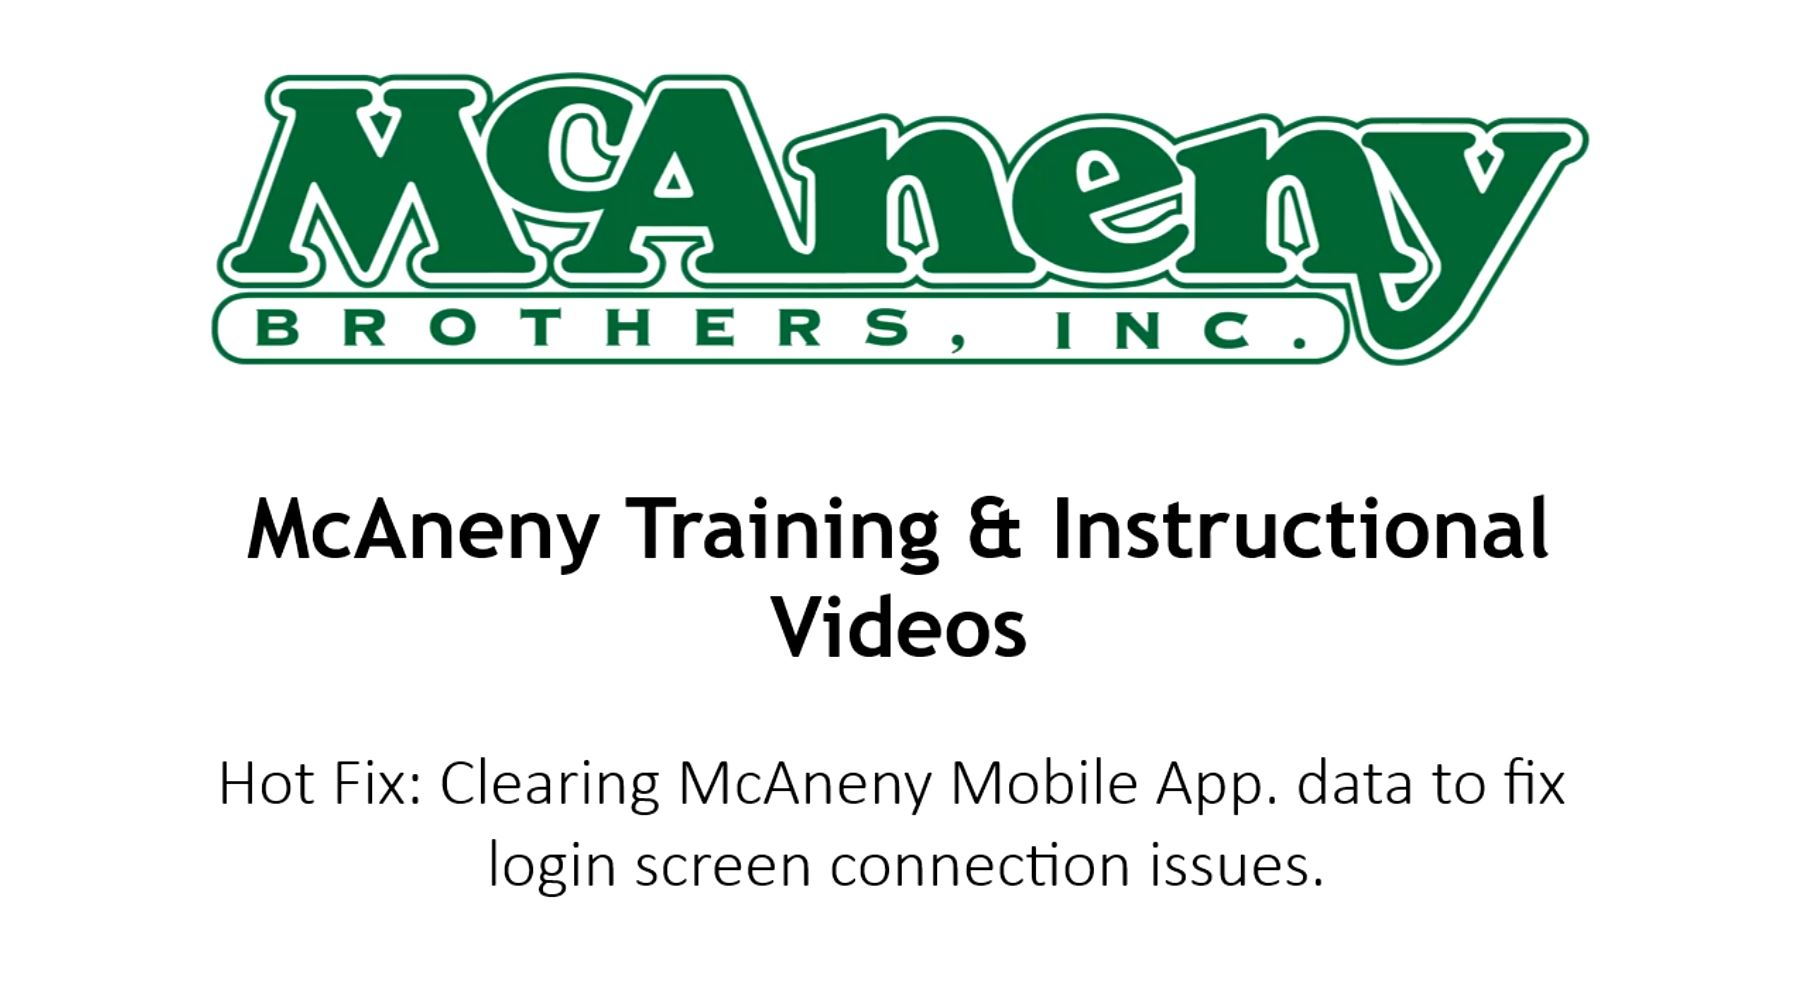 Hot Fix Clearing McAneny Mobile App